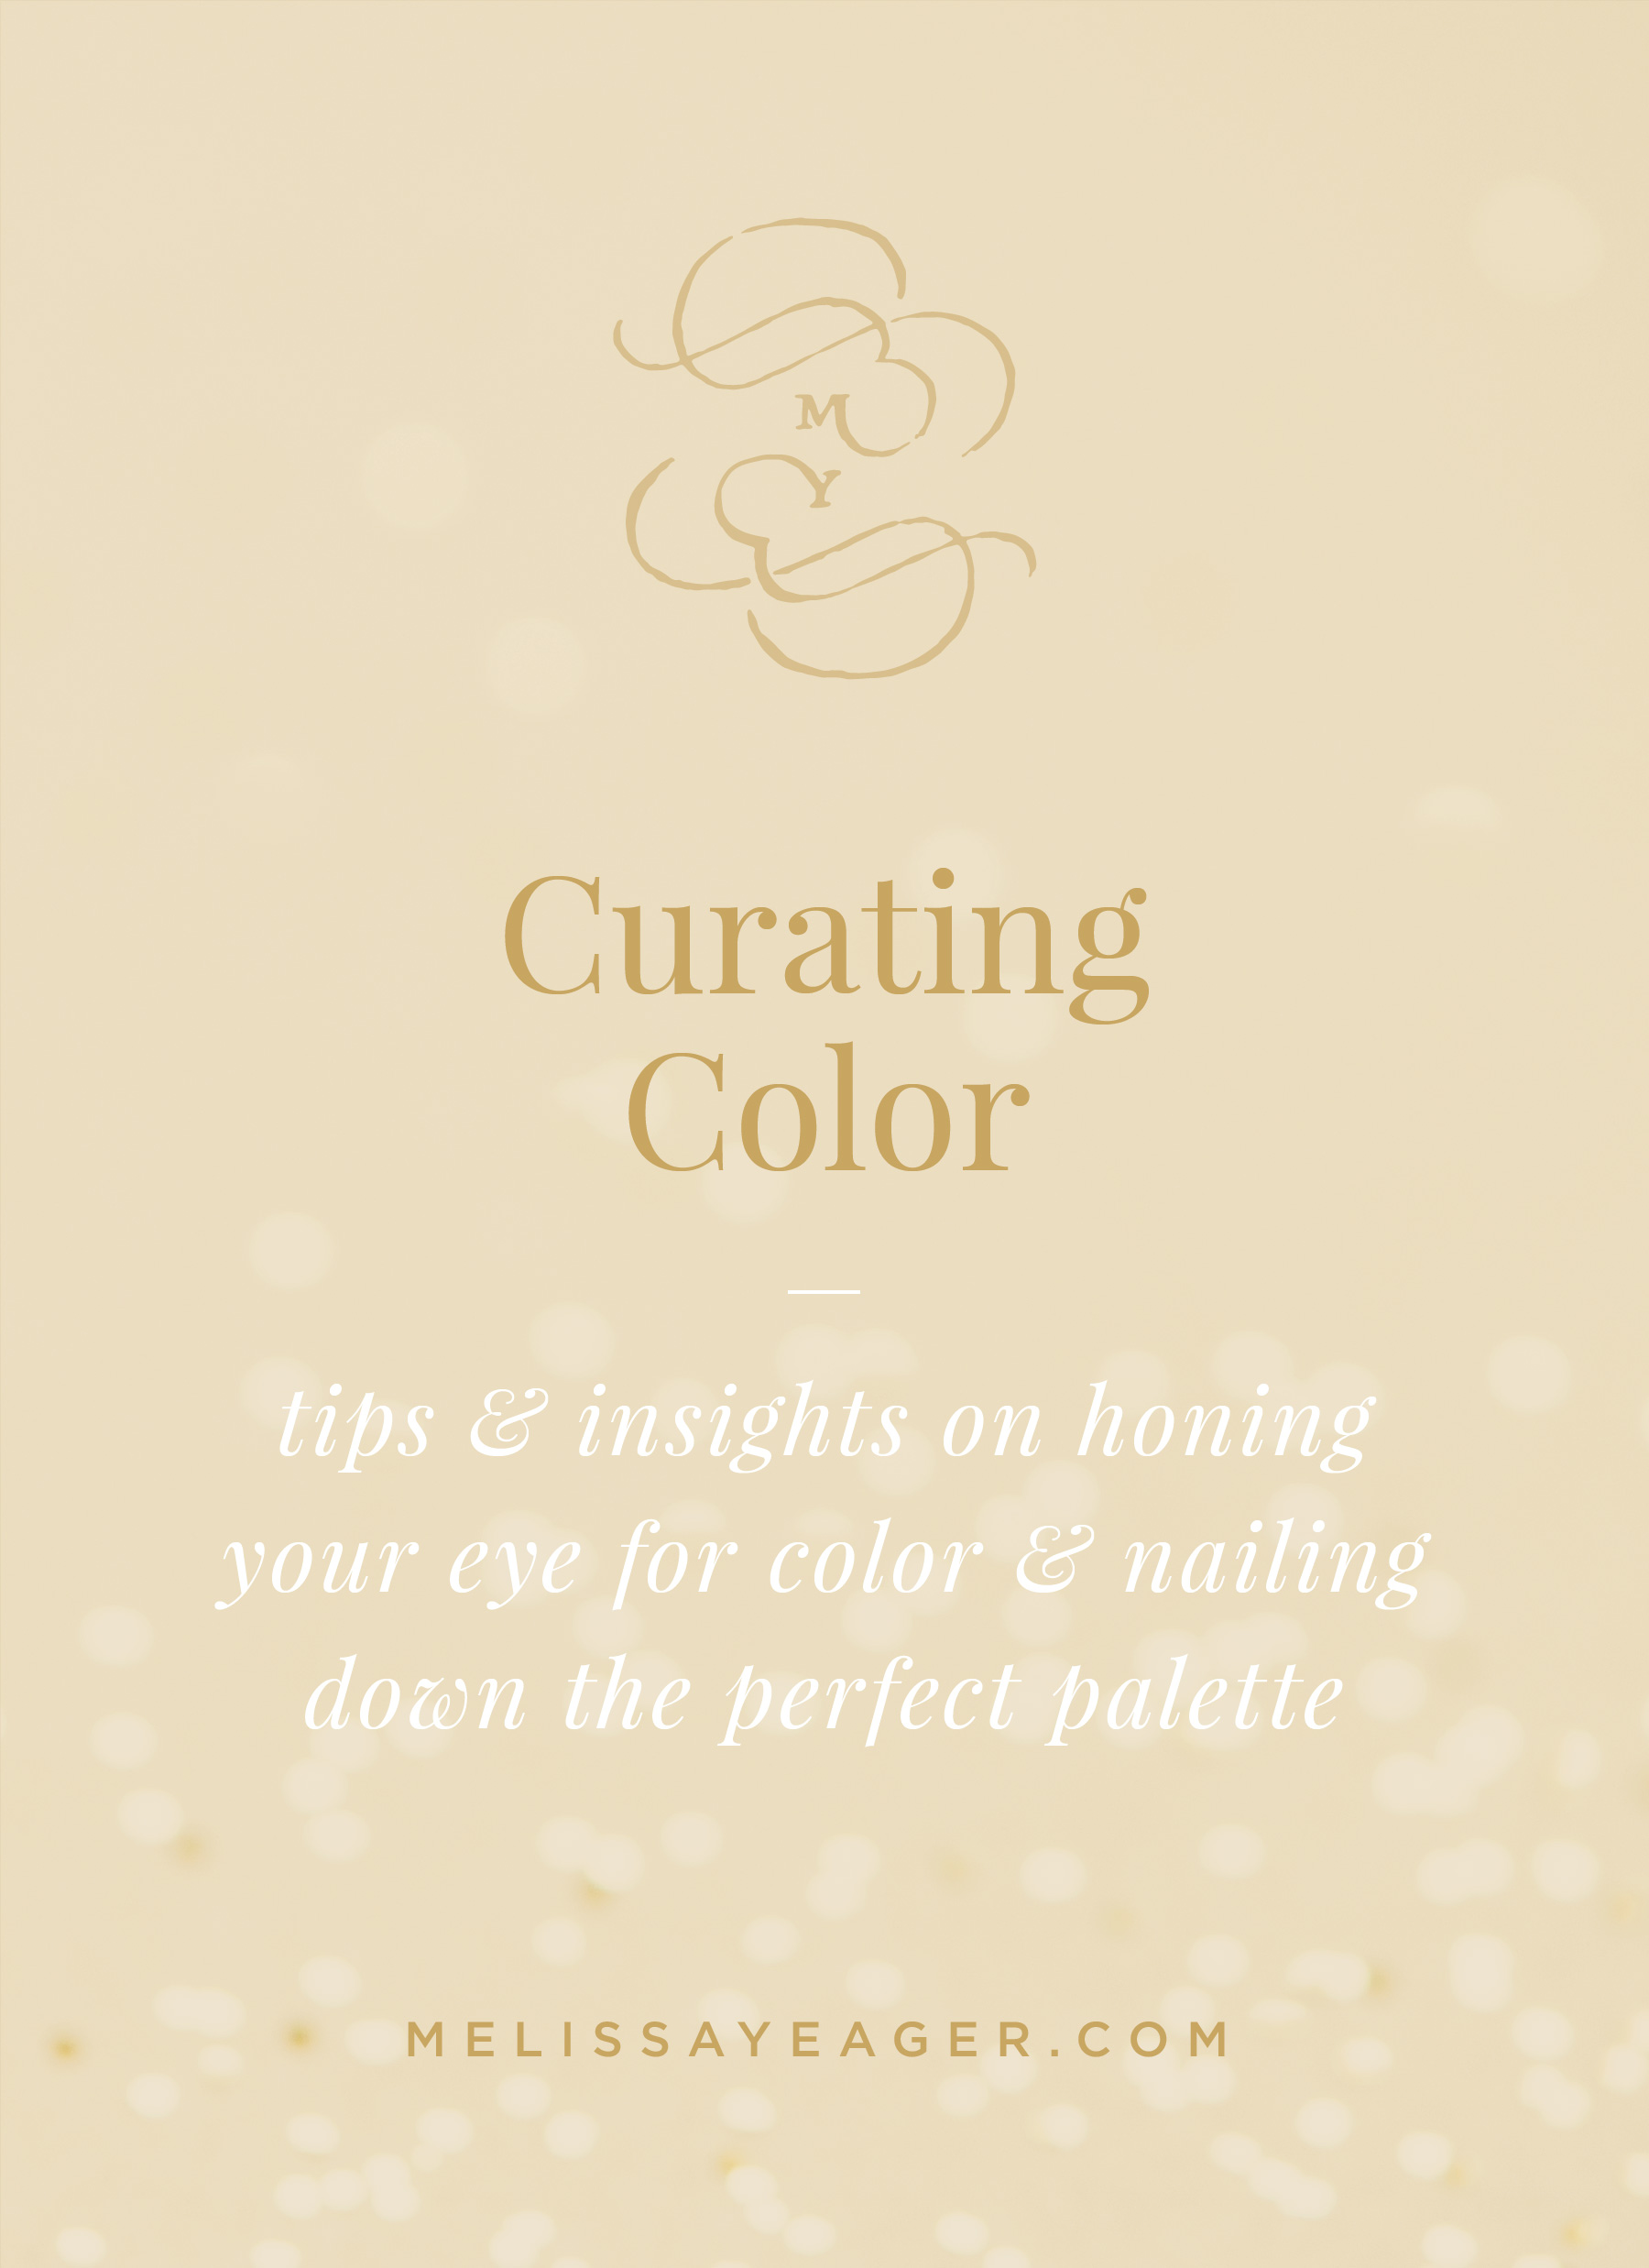 Curating Color - tips & insights on honing your eye for color & nailing down that perfect palette